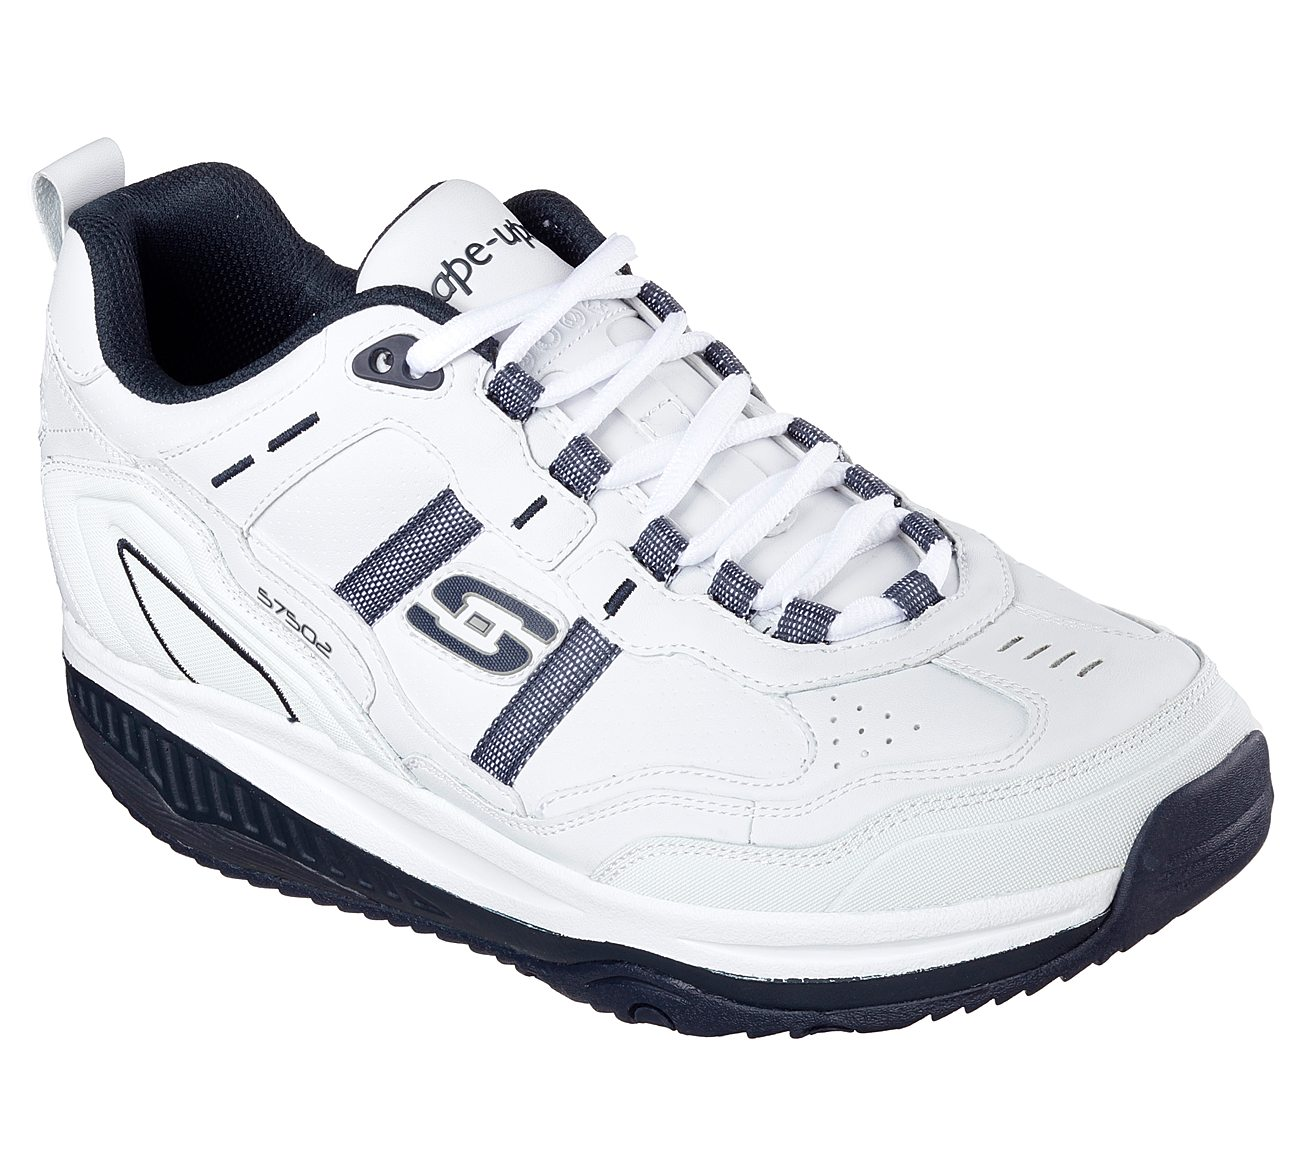 skechers shape up shoes